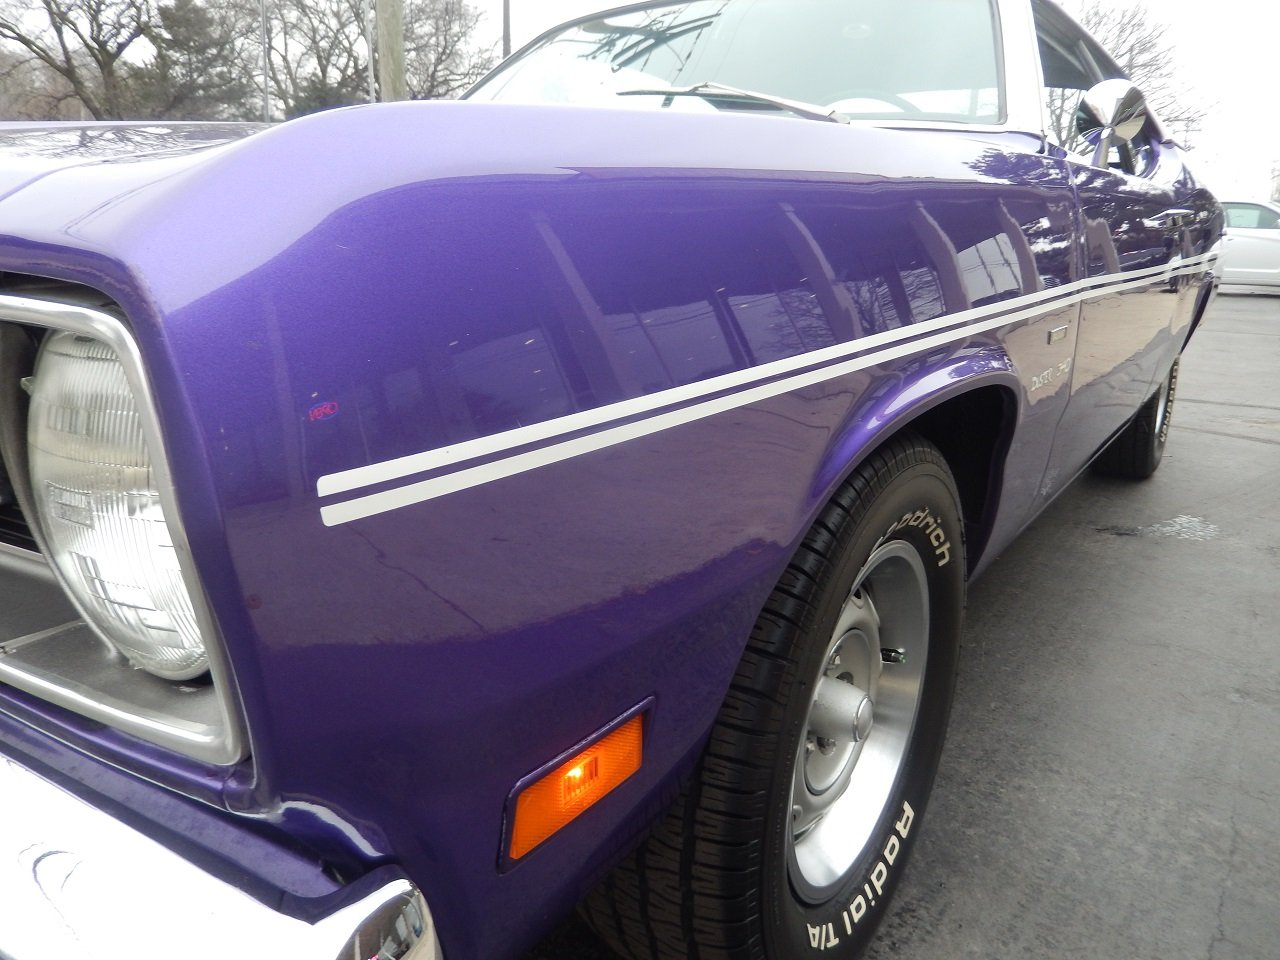 1970 70 Duster 340 H code numb match & restored ! For Sale (picture 4 of 6)